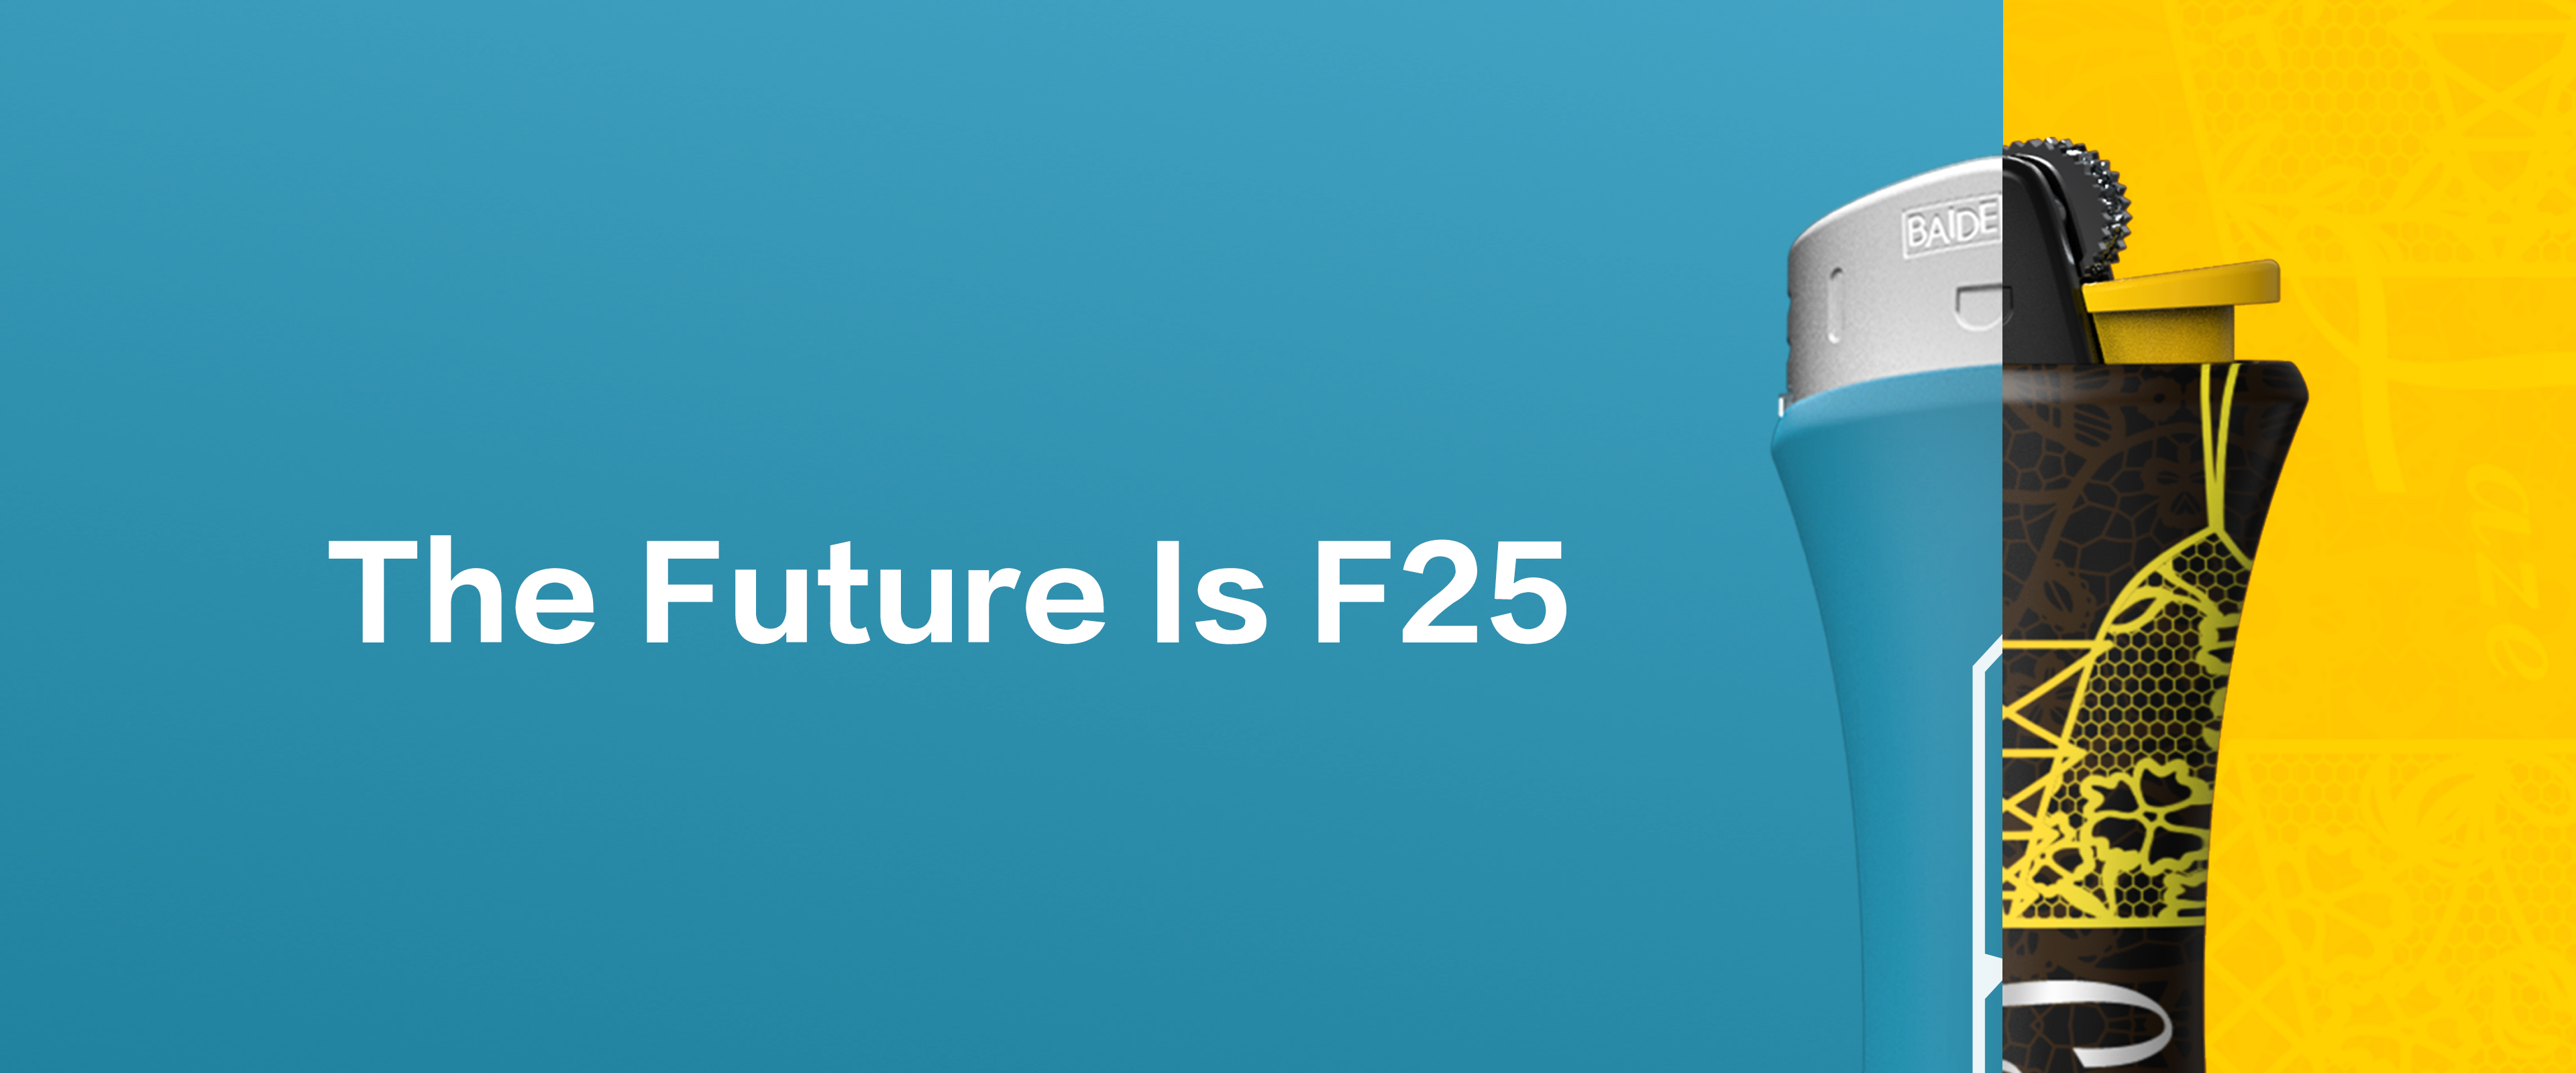 The Future is F25